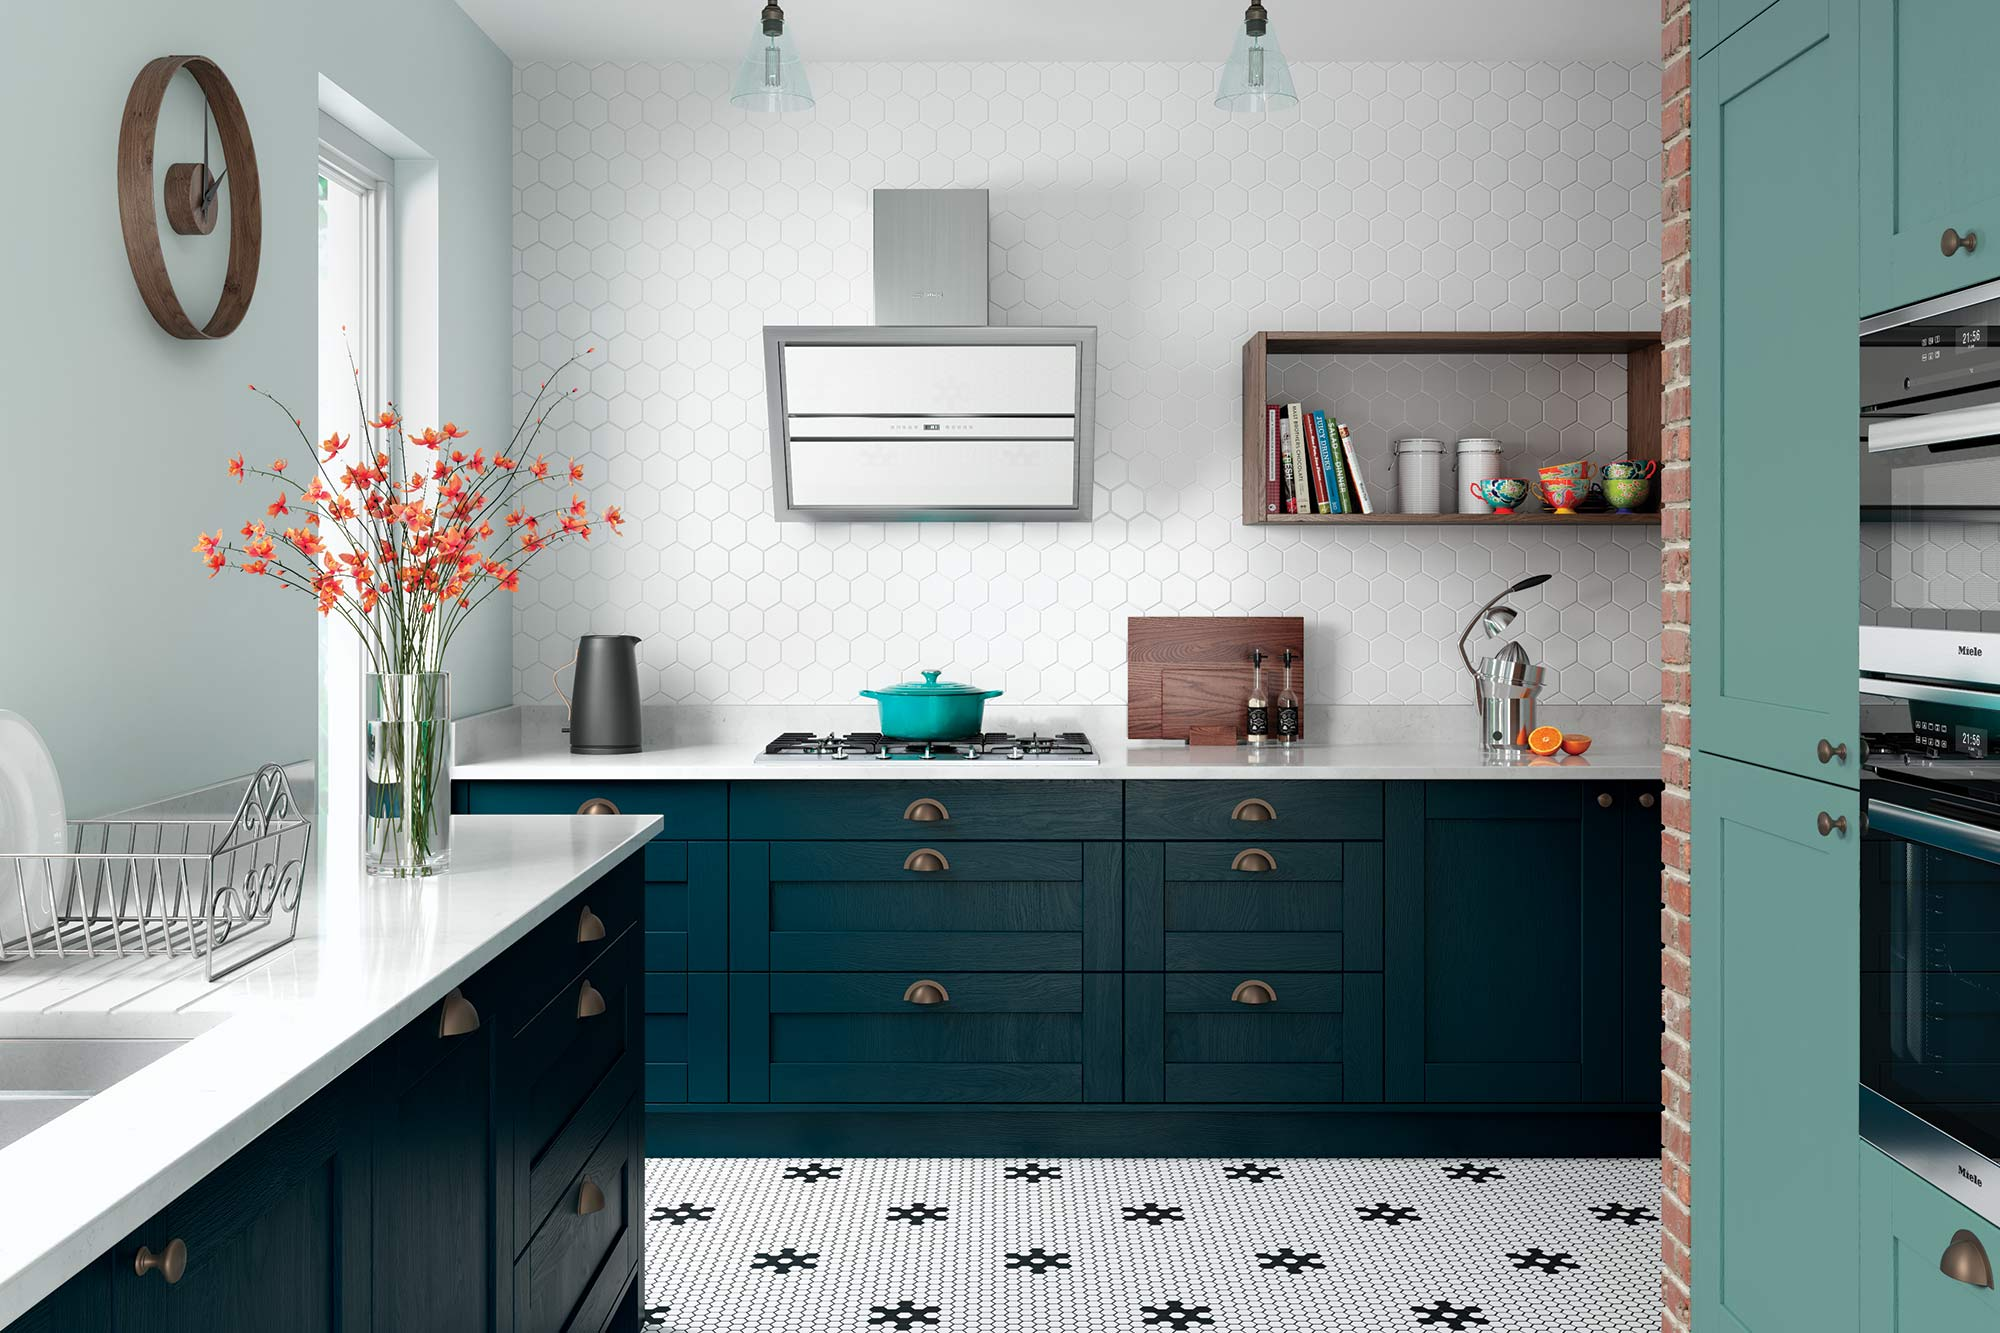 Contemporary style shaker kitchen in marine blue and teal green picture 4